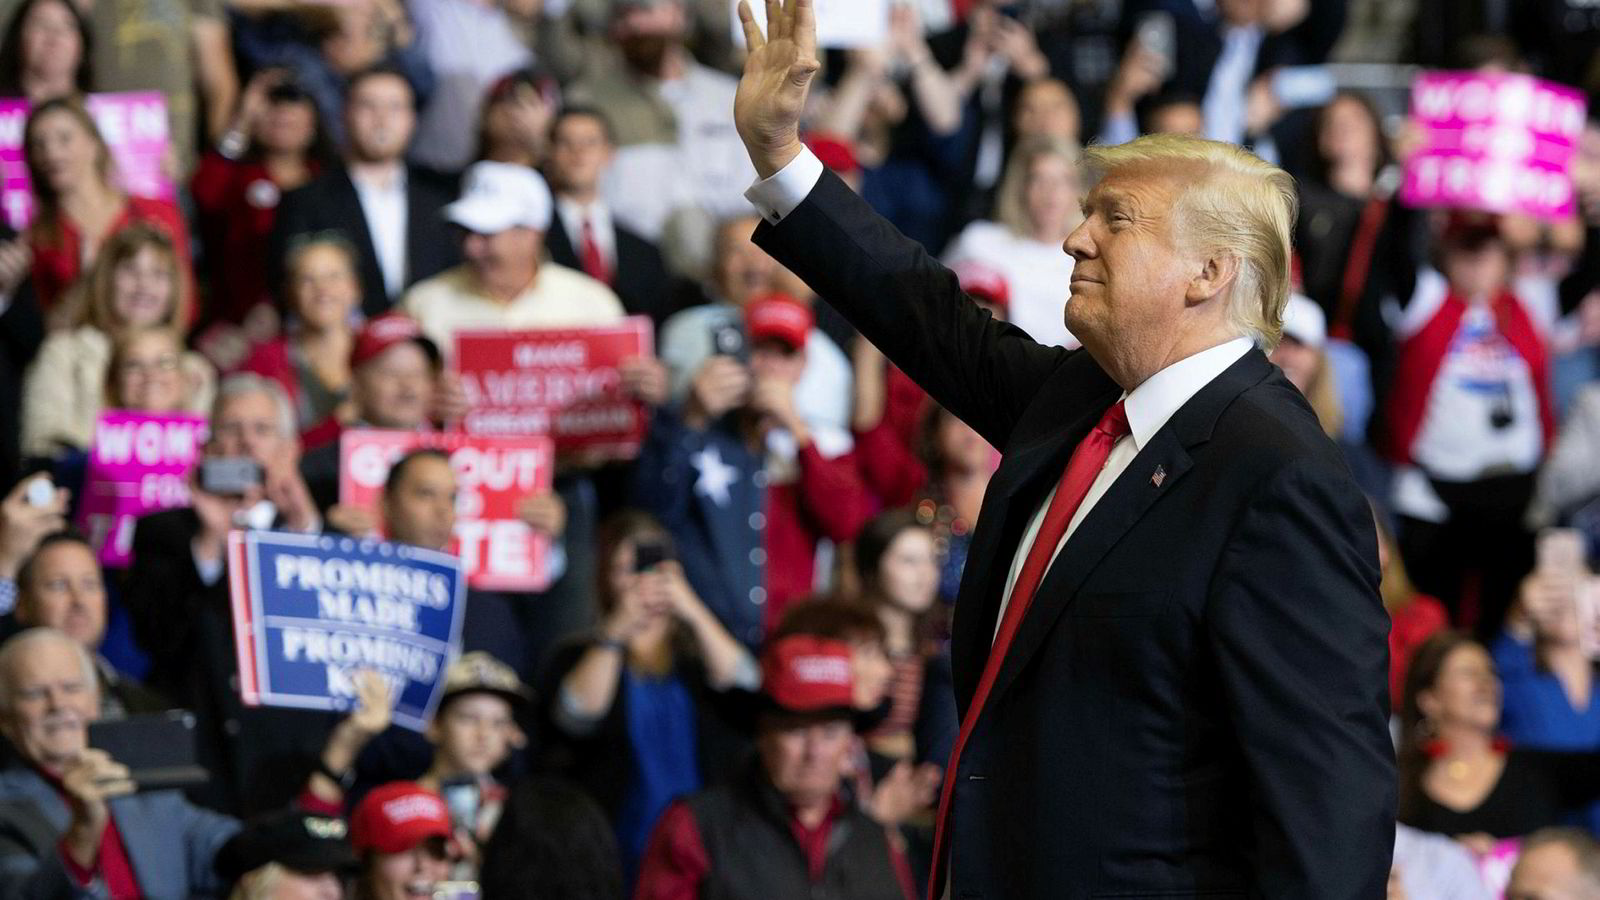 US President Donald Trump arrives for a campaign rally at the Toyota Center in Houston, Texas, on October 22, 2018. (Photo by SAUL LOEB / AFP)